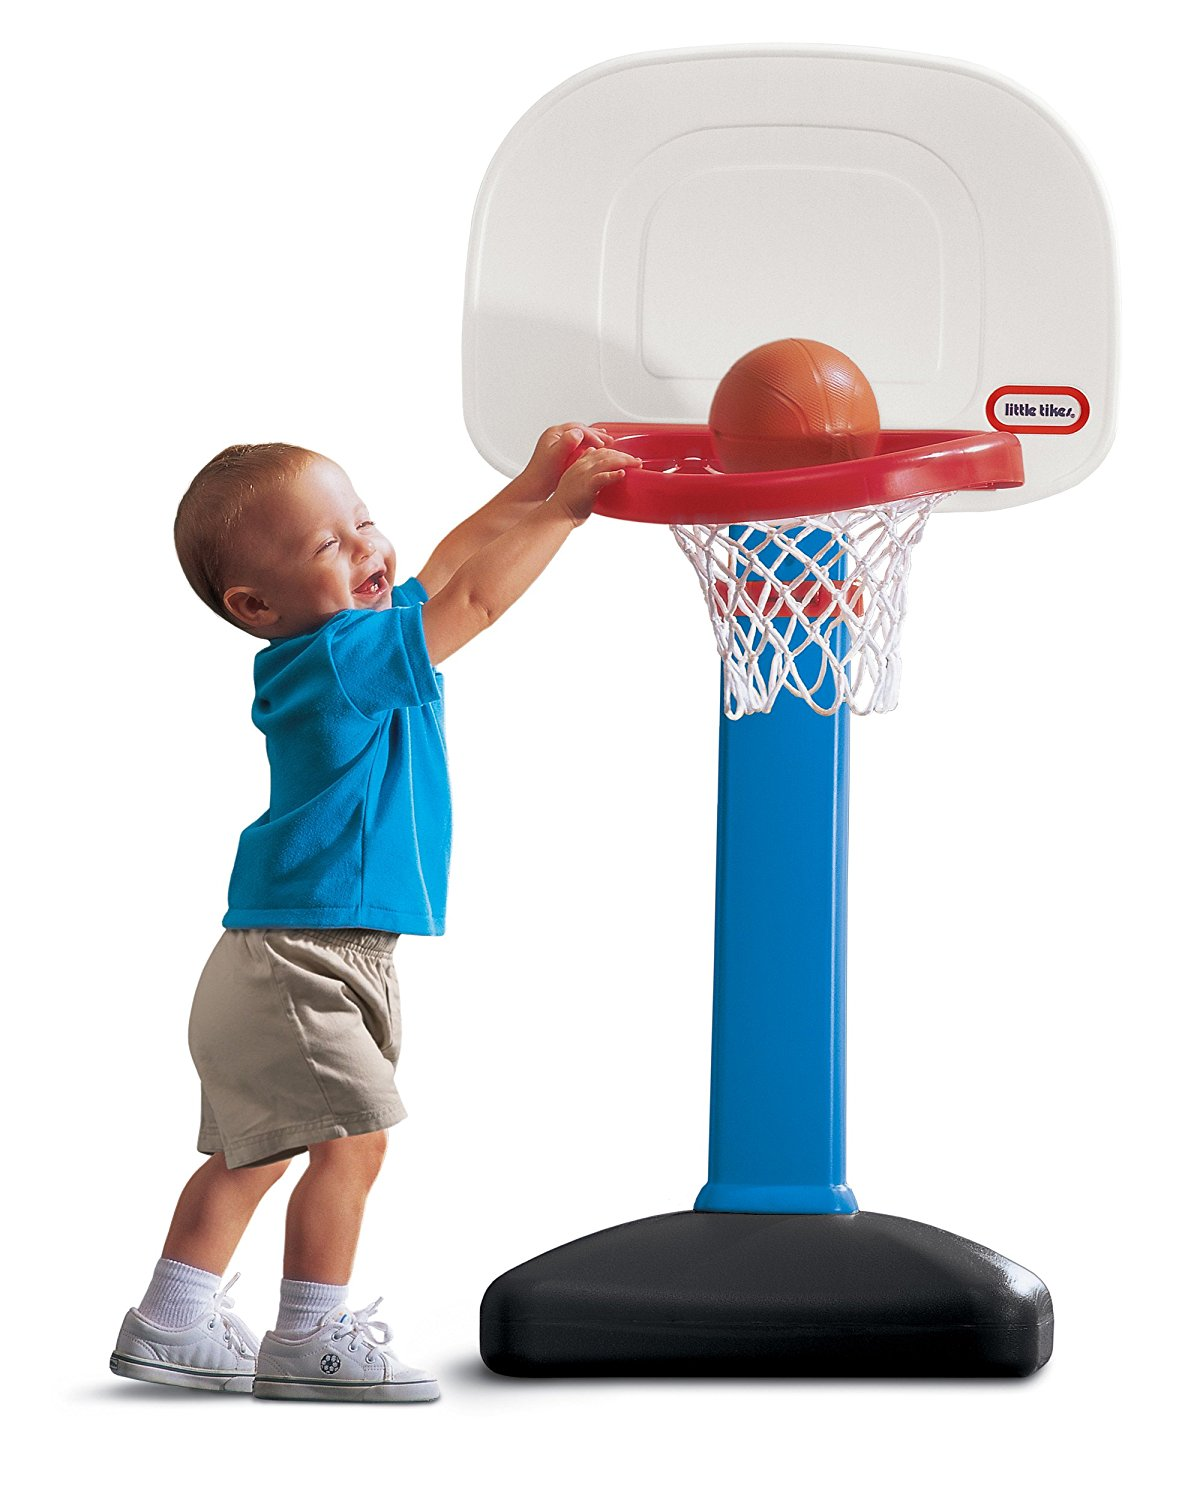 EasyScore Basketball Set, Basketball Hoop Adjusts to Six Heights from 2 to 4 Feet By Little Tikes by